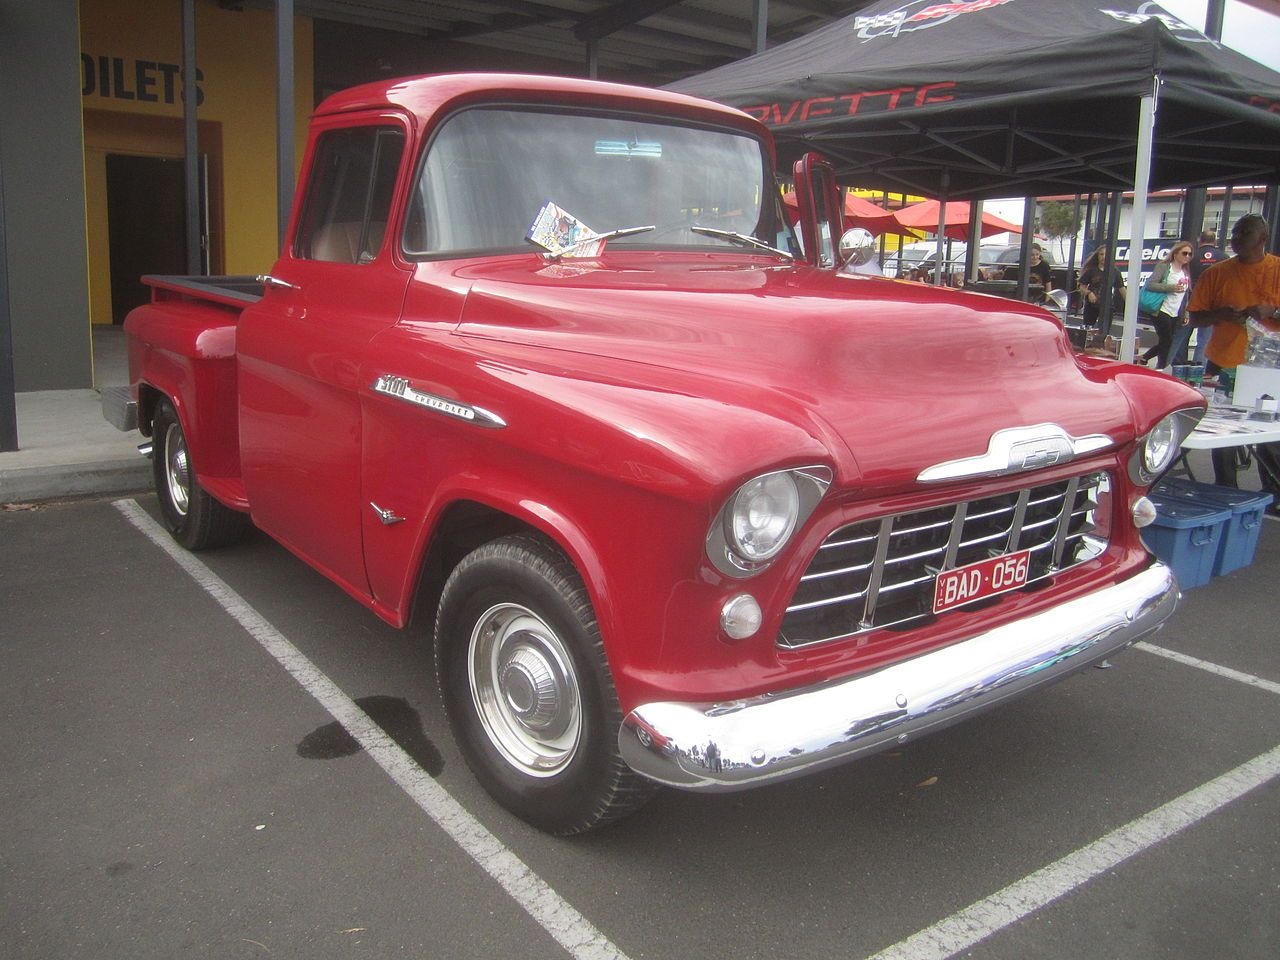 All Chevy 1956 chevrolet 3100 : 1956 Chevrolet 3100 Pickup - Chevrolet Task Force - Wikipedia ...